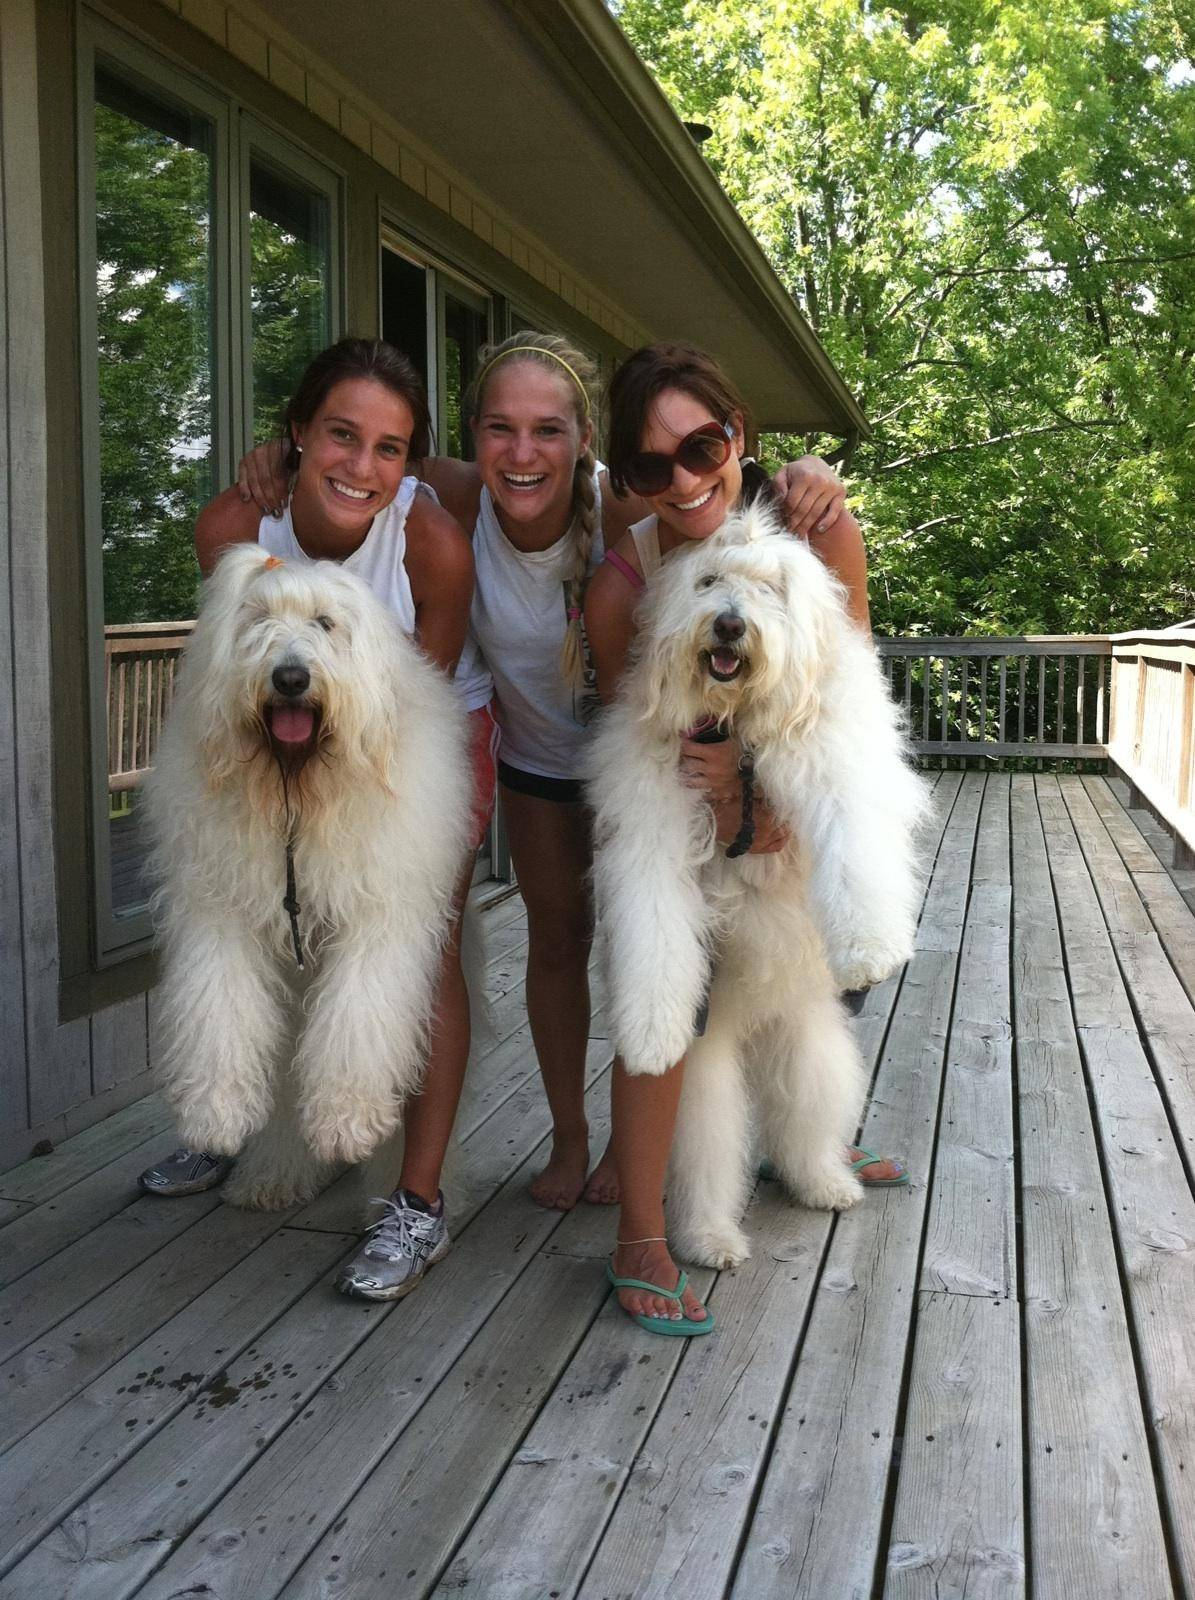 With big smiles and well-behaved dogs, Lucy and Ginger, the Giancola sisters, from left to right, Domenica, Gina and Giovanna enjoy a family vacation in Galena a couple of months before Gina's death in 2011.